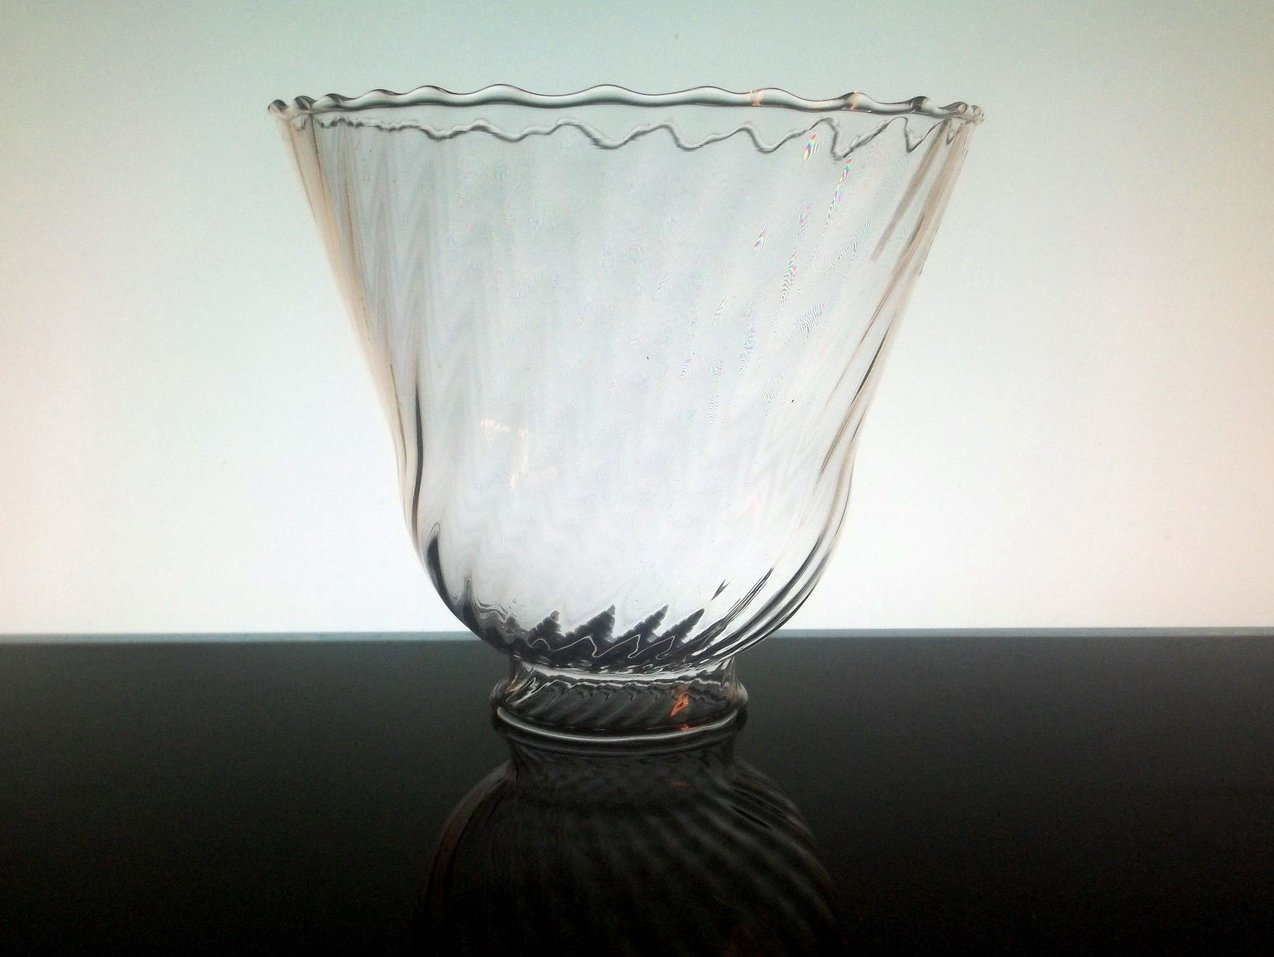 Glass Lamp Shade 2 1 8 Fitter X 5 X 5 5 Inches Rippled